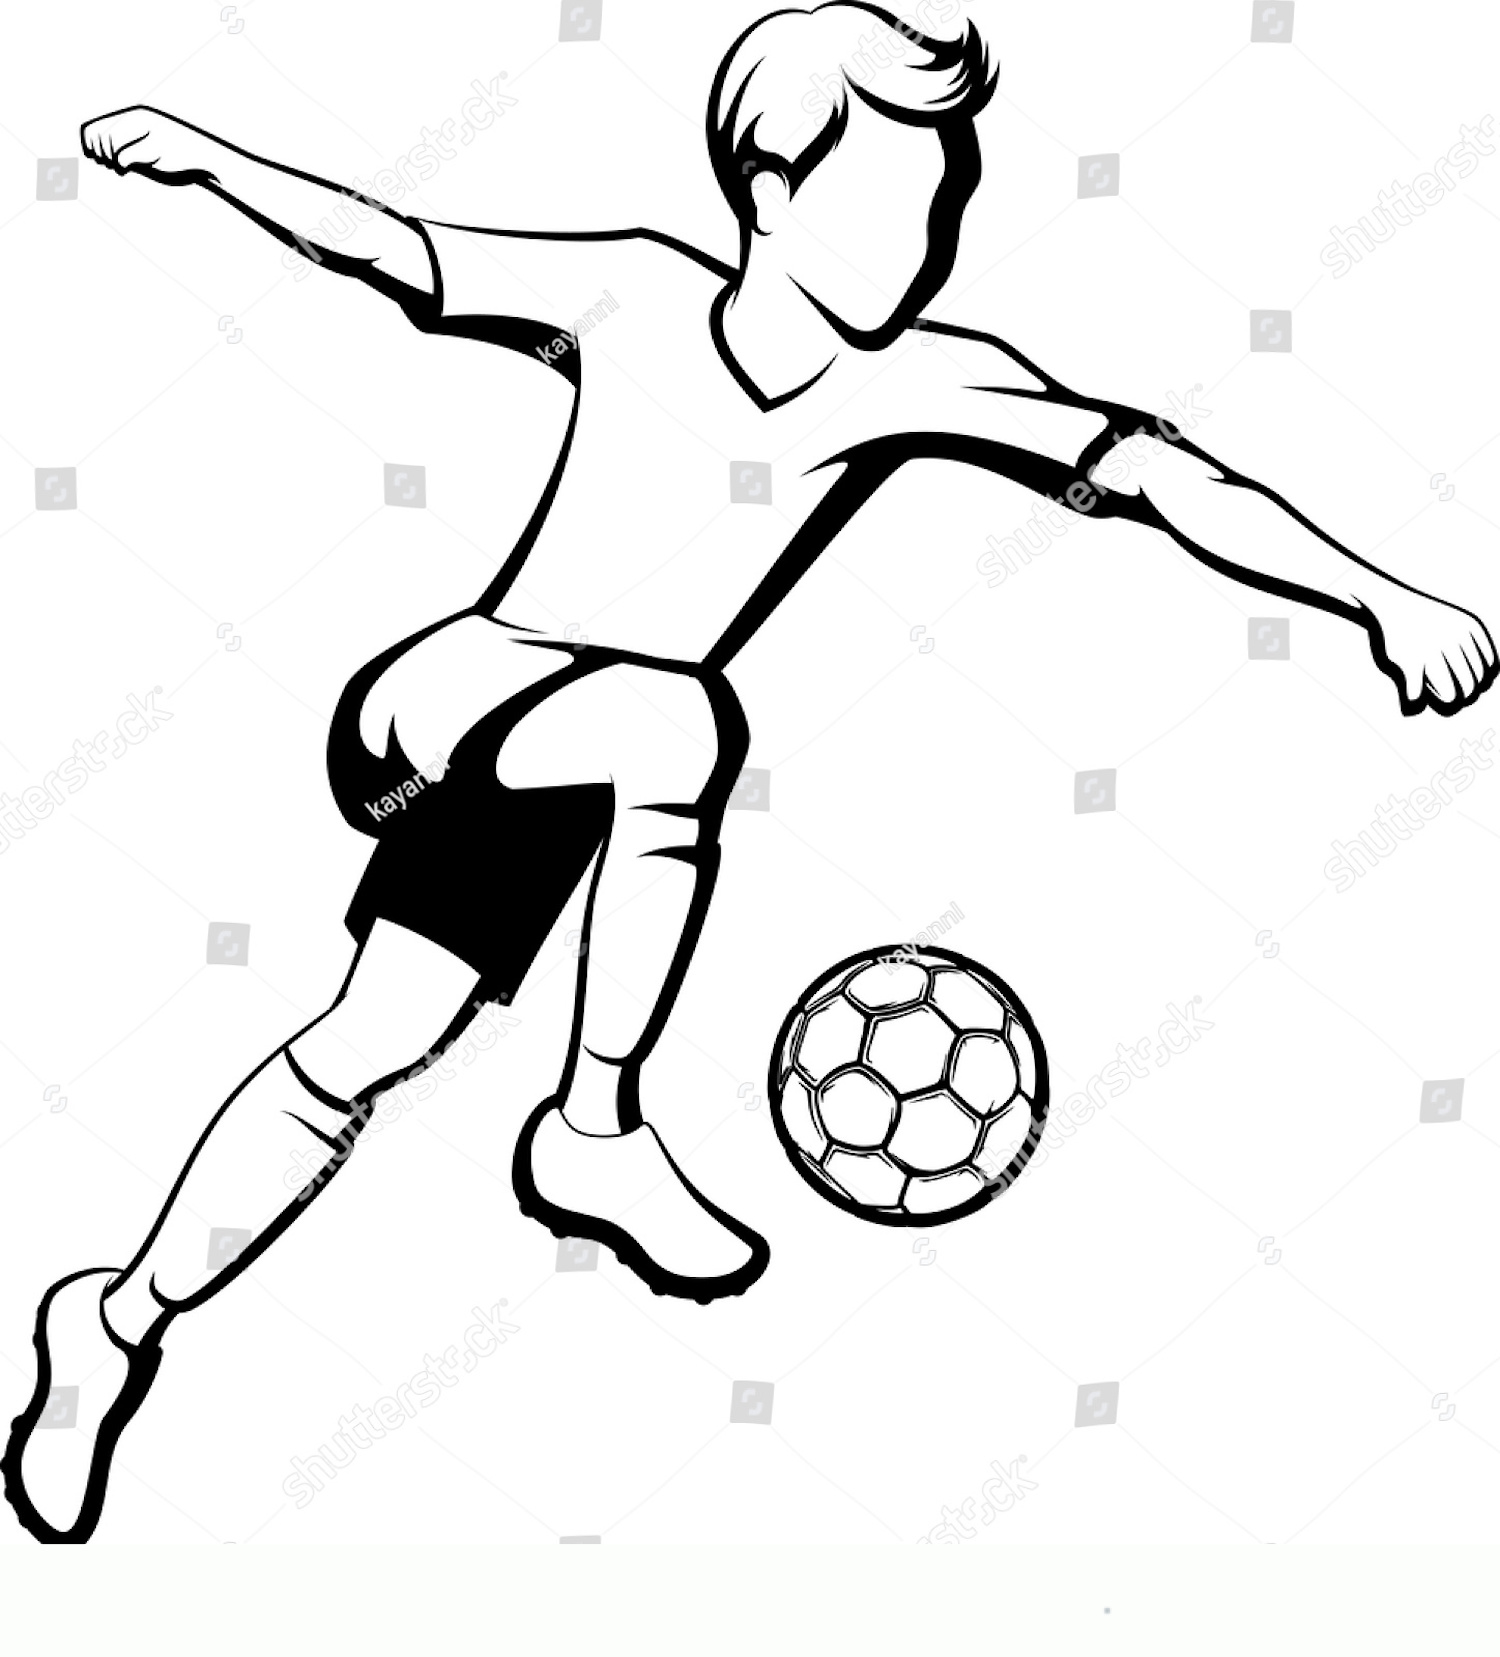 soccer ball coloring pages download and print for free - soccer ... | 1657x1500